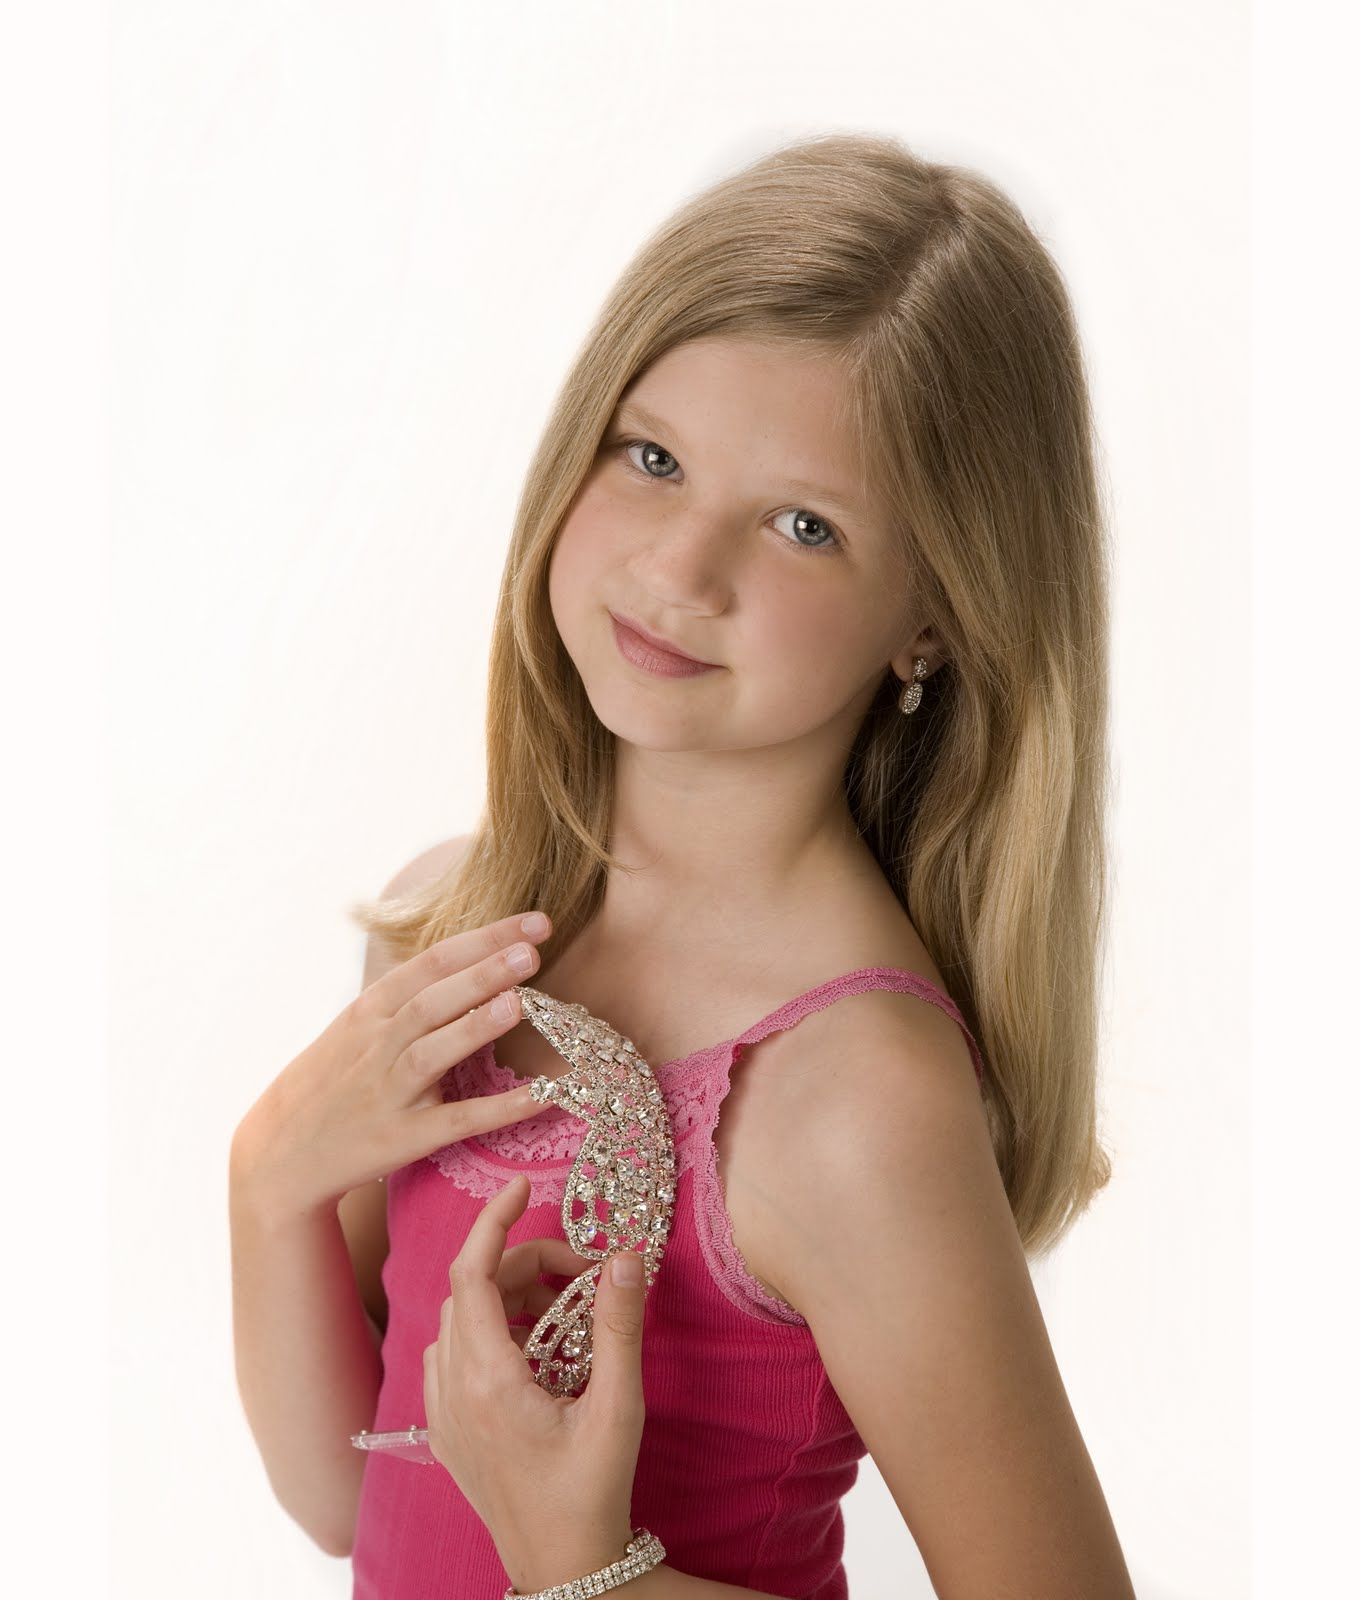 Teen junior girl models